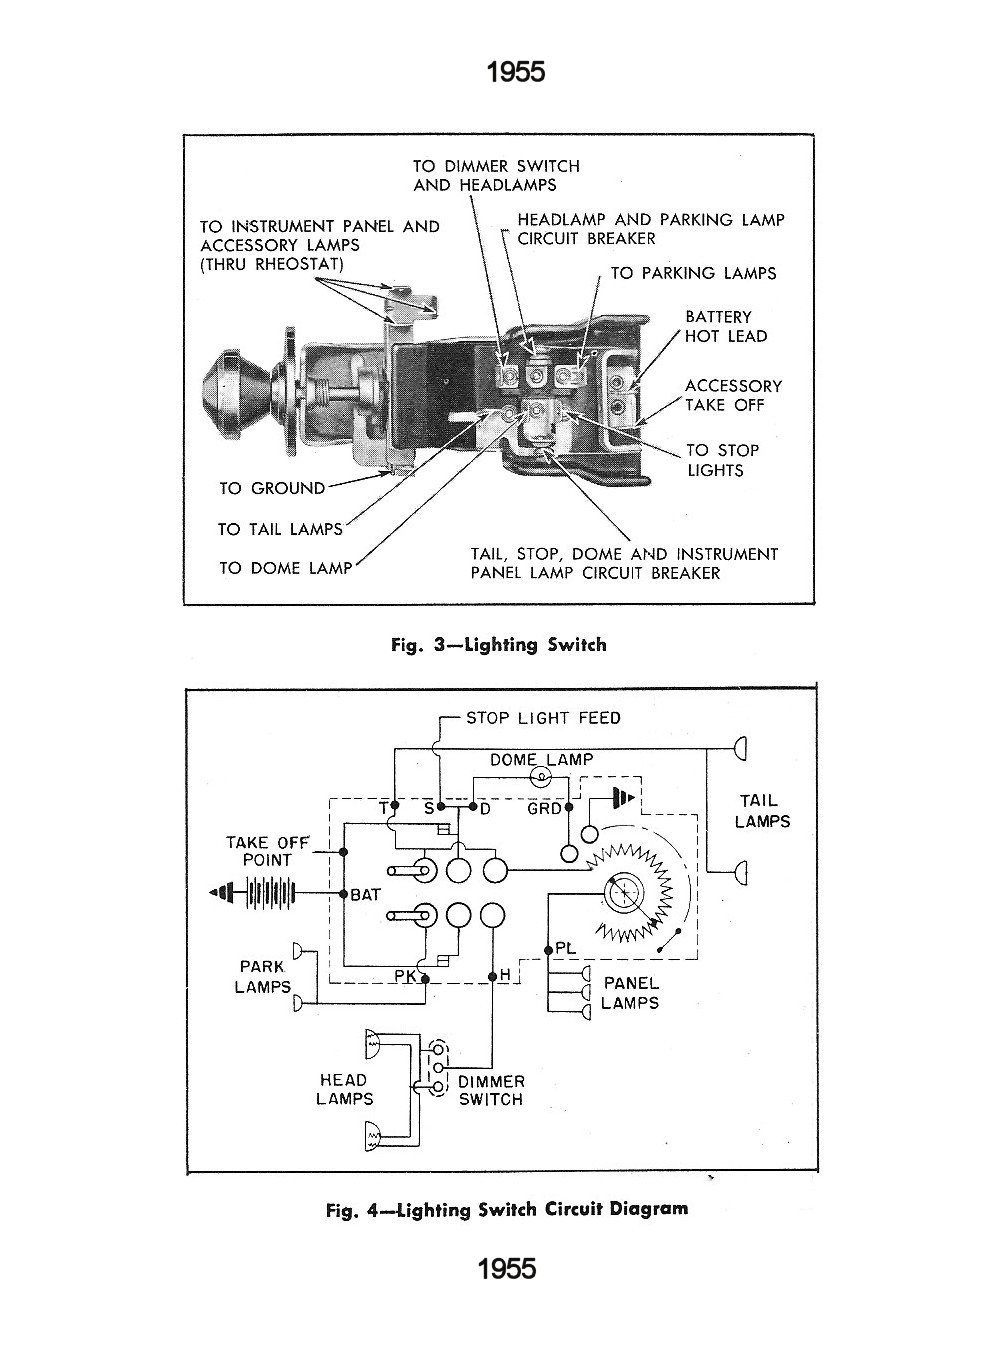 1956 Chevy Car Ignition Switch Wiring Diagram Chrysler Voyager Fuse Box Location For Wiring Diagram Schematics